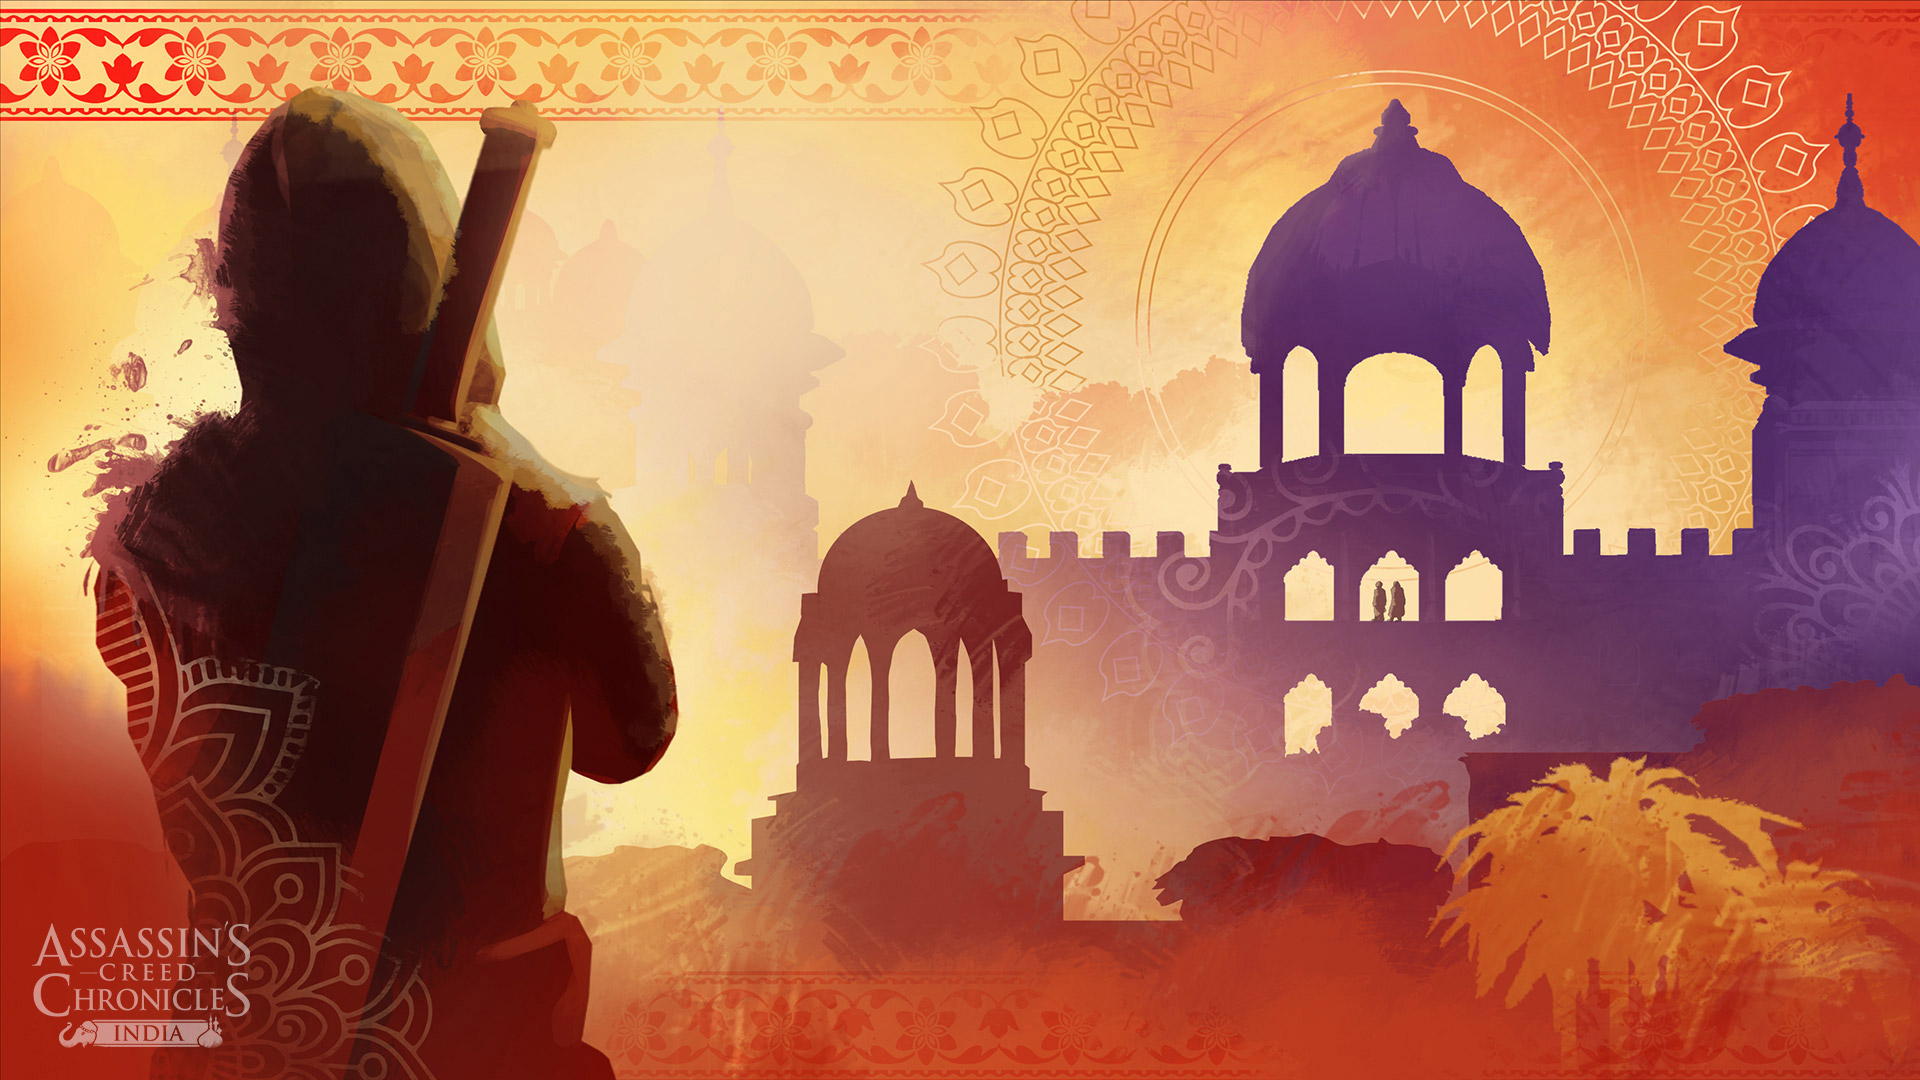 Assassin's Creed Chronicles: India Wallpaper in 1920x1080